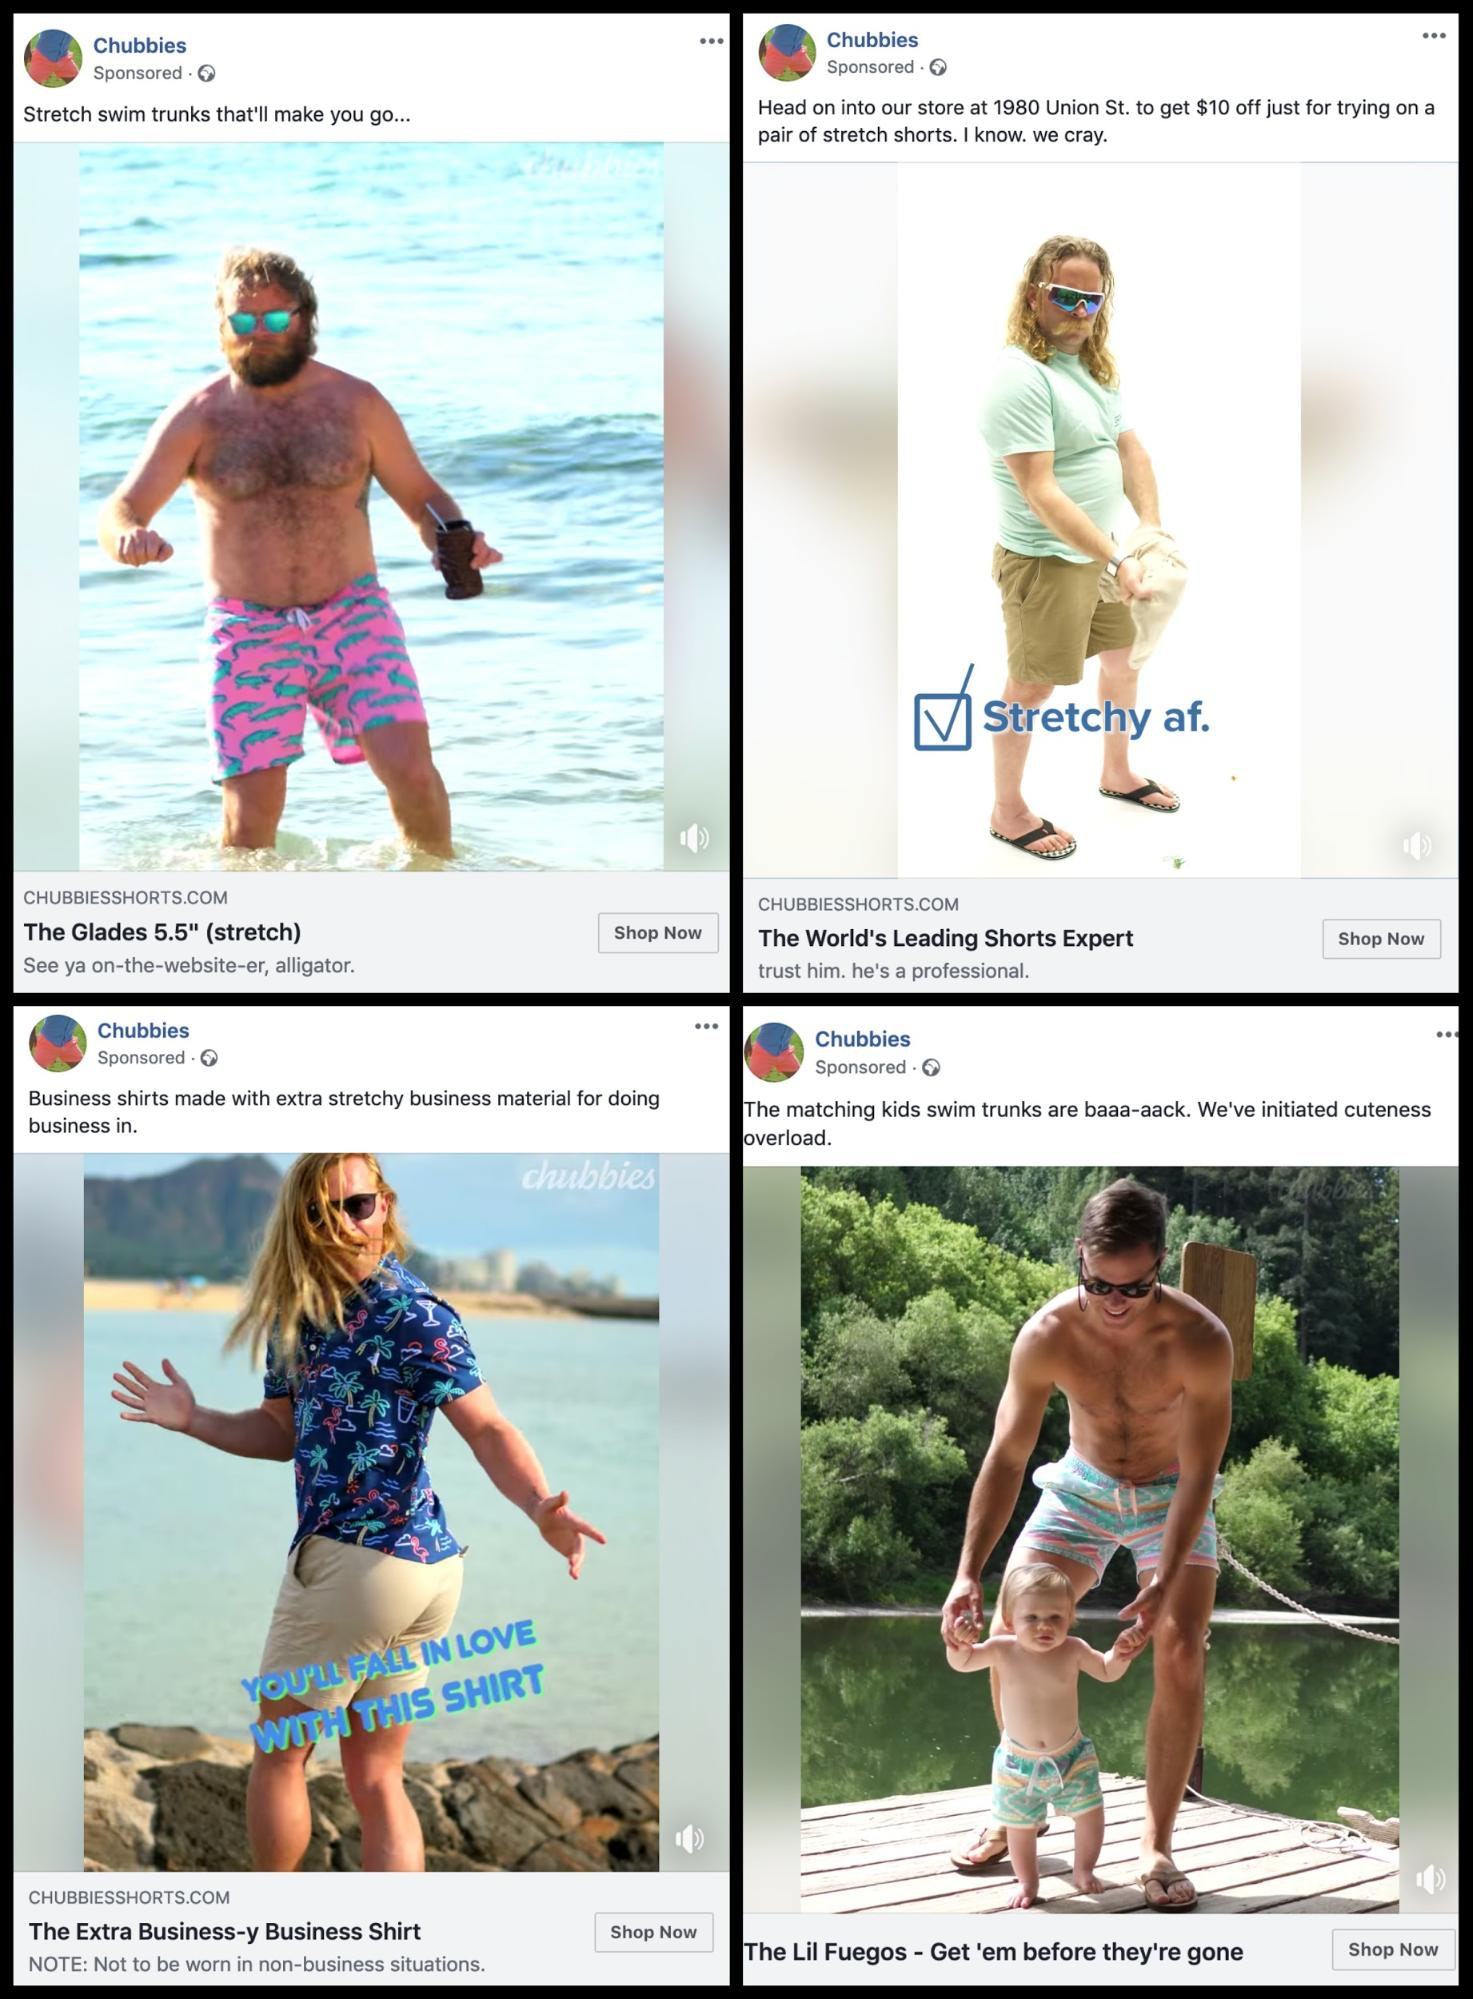 Chubbies Facebook Info and Ads